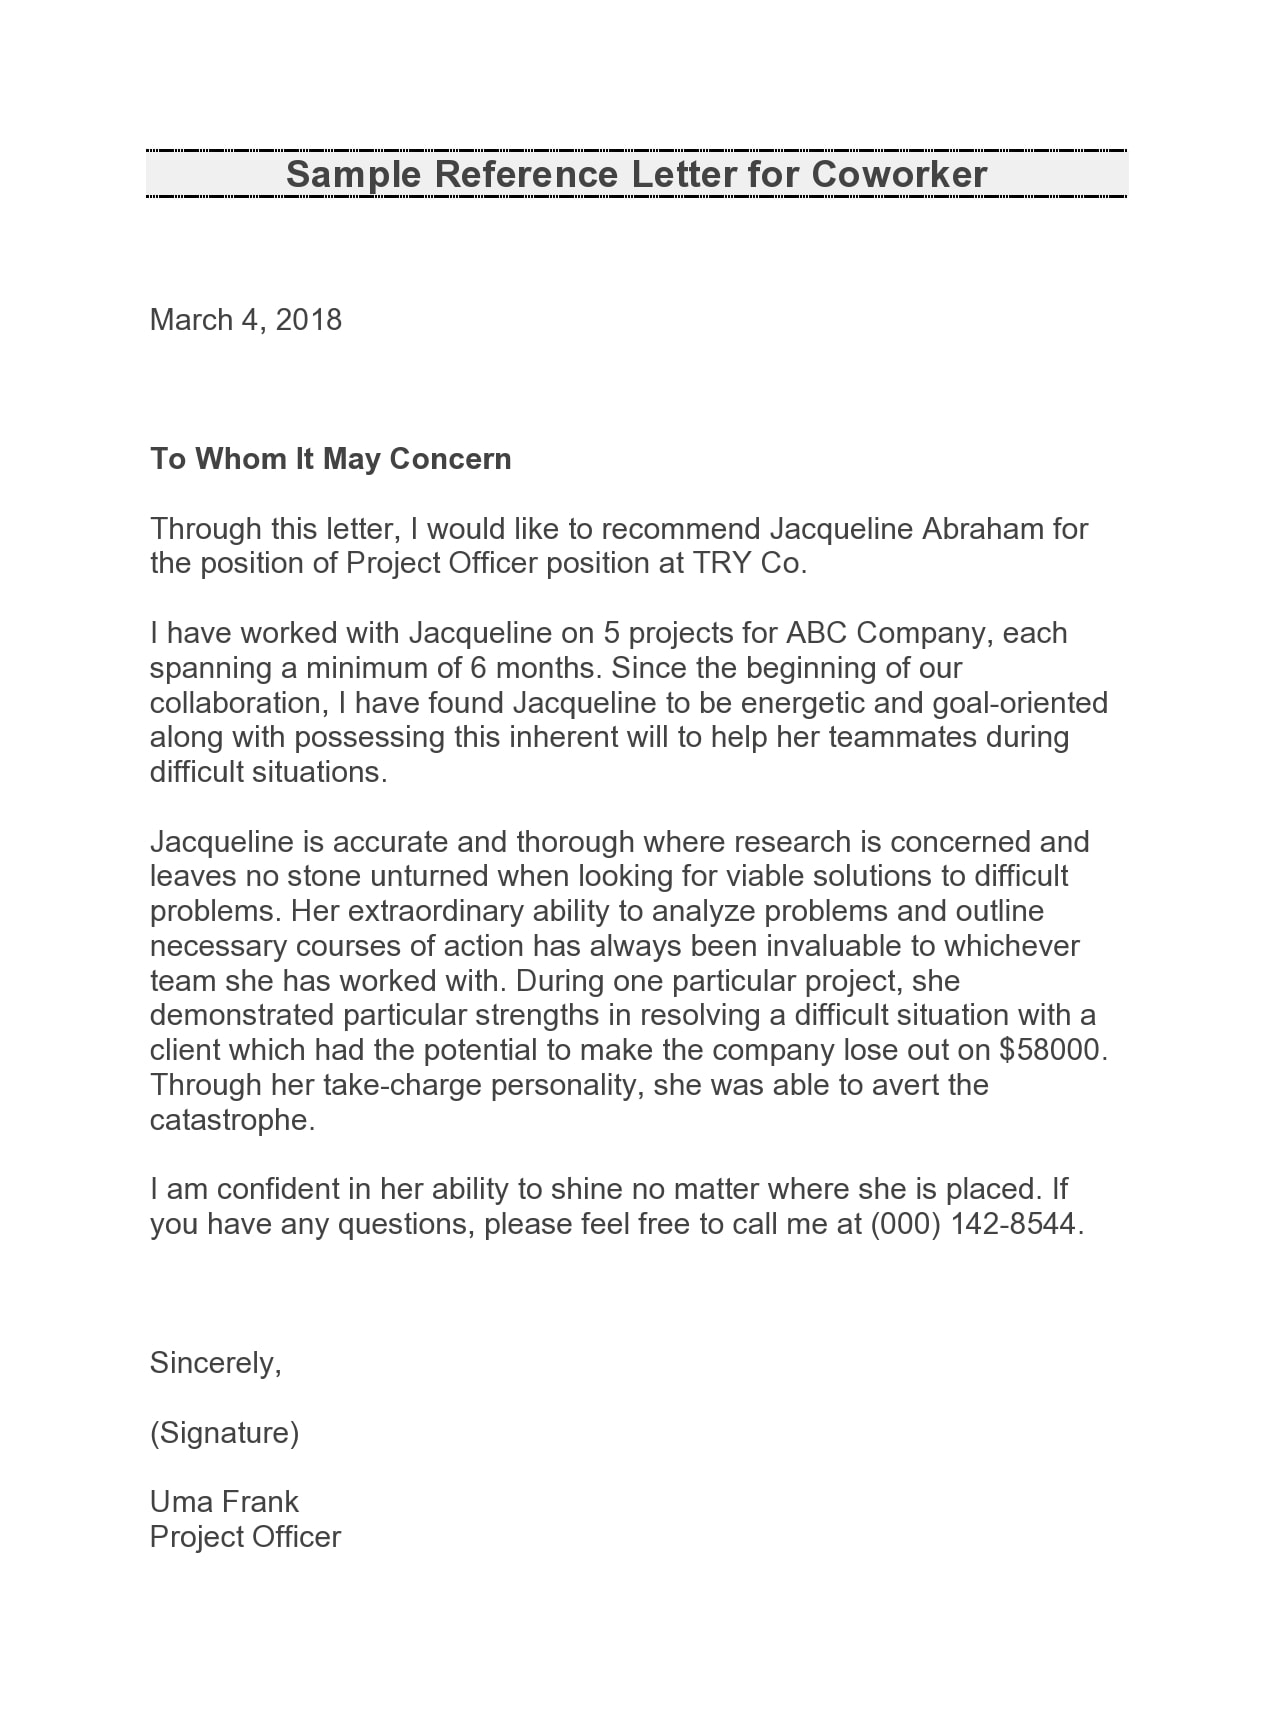 letter of recommendation for coworker 08